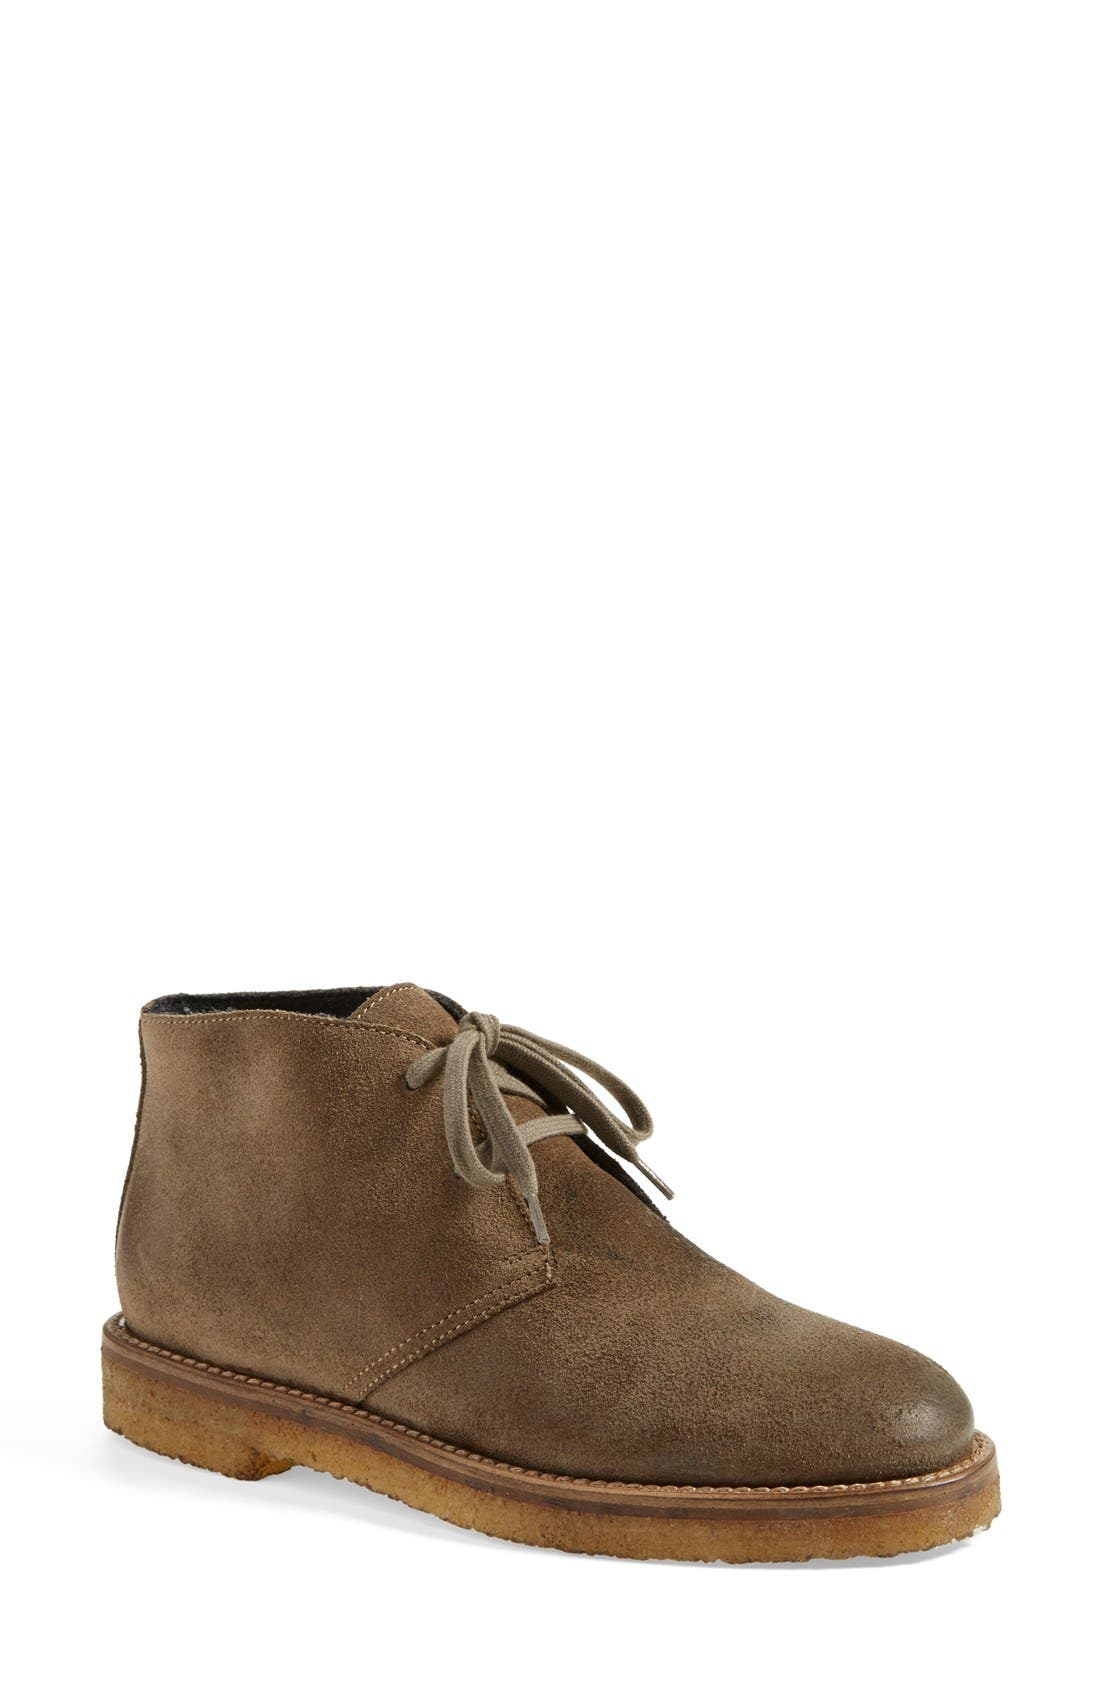 Main Image - Vince 'Clay' Chukka Boot (Women)